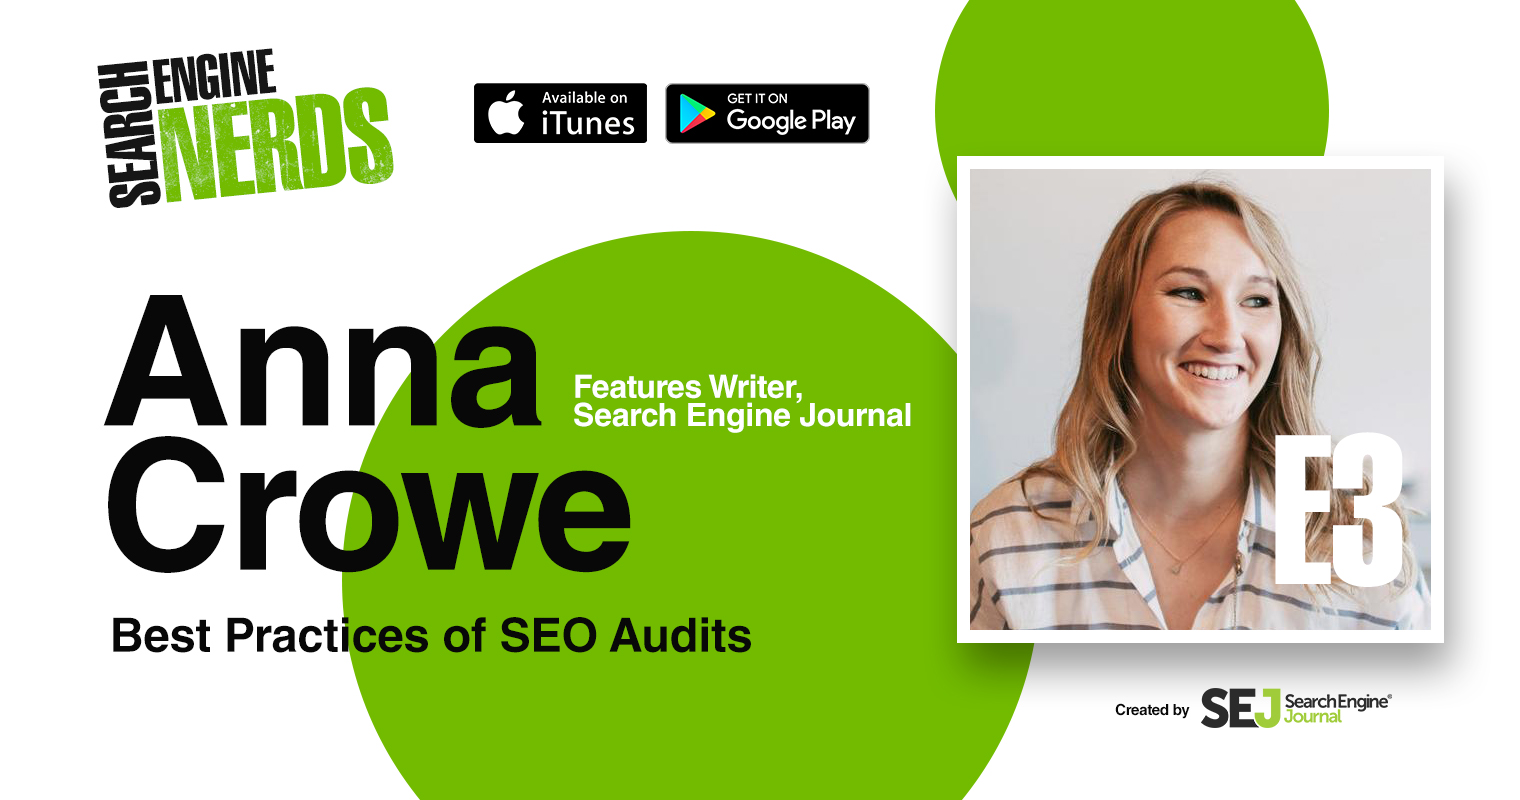 https://www.searchenginejournal.com/anna-crowe-best-practices-seo-audits-podcast/190451/